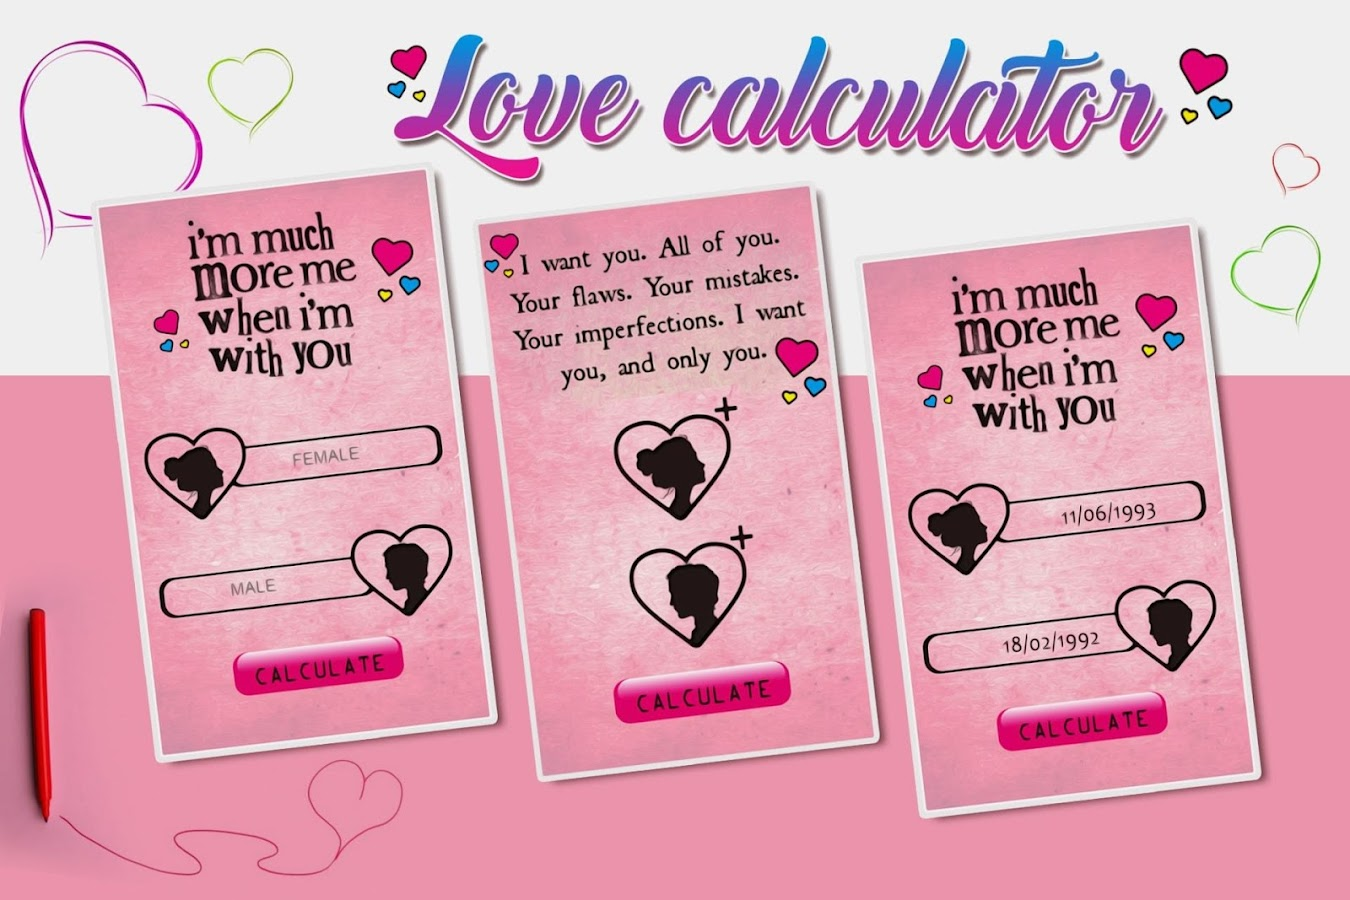 Uncategorized Love Calculate love calculator valentine day android apps on google play screenshot